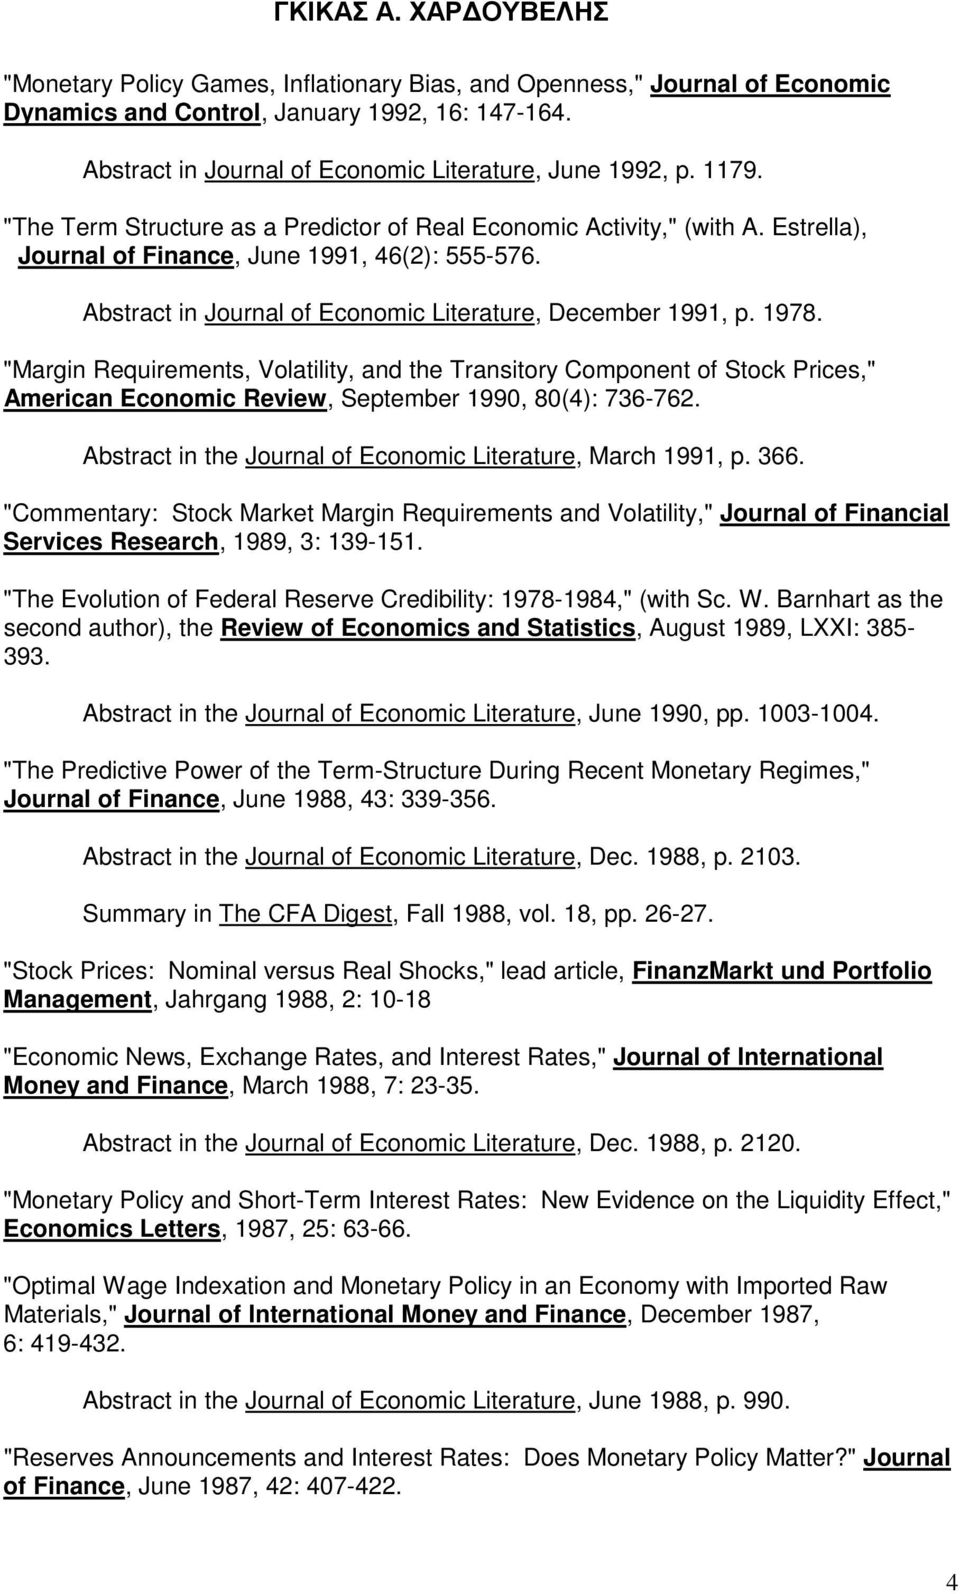 """Margin Requirements, Volatility, and the Transitory Component of Stock Prices,"" American Economic Review, September 1990, 80(4): 736-762."